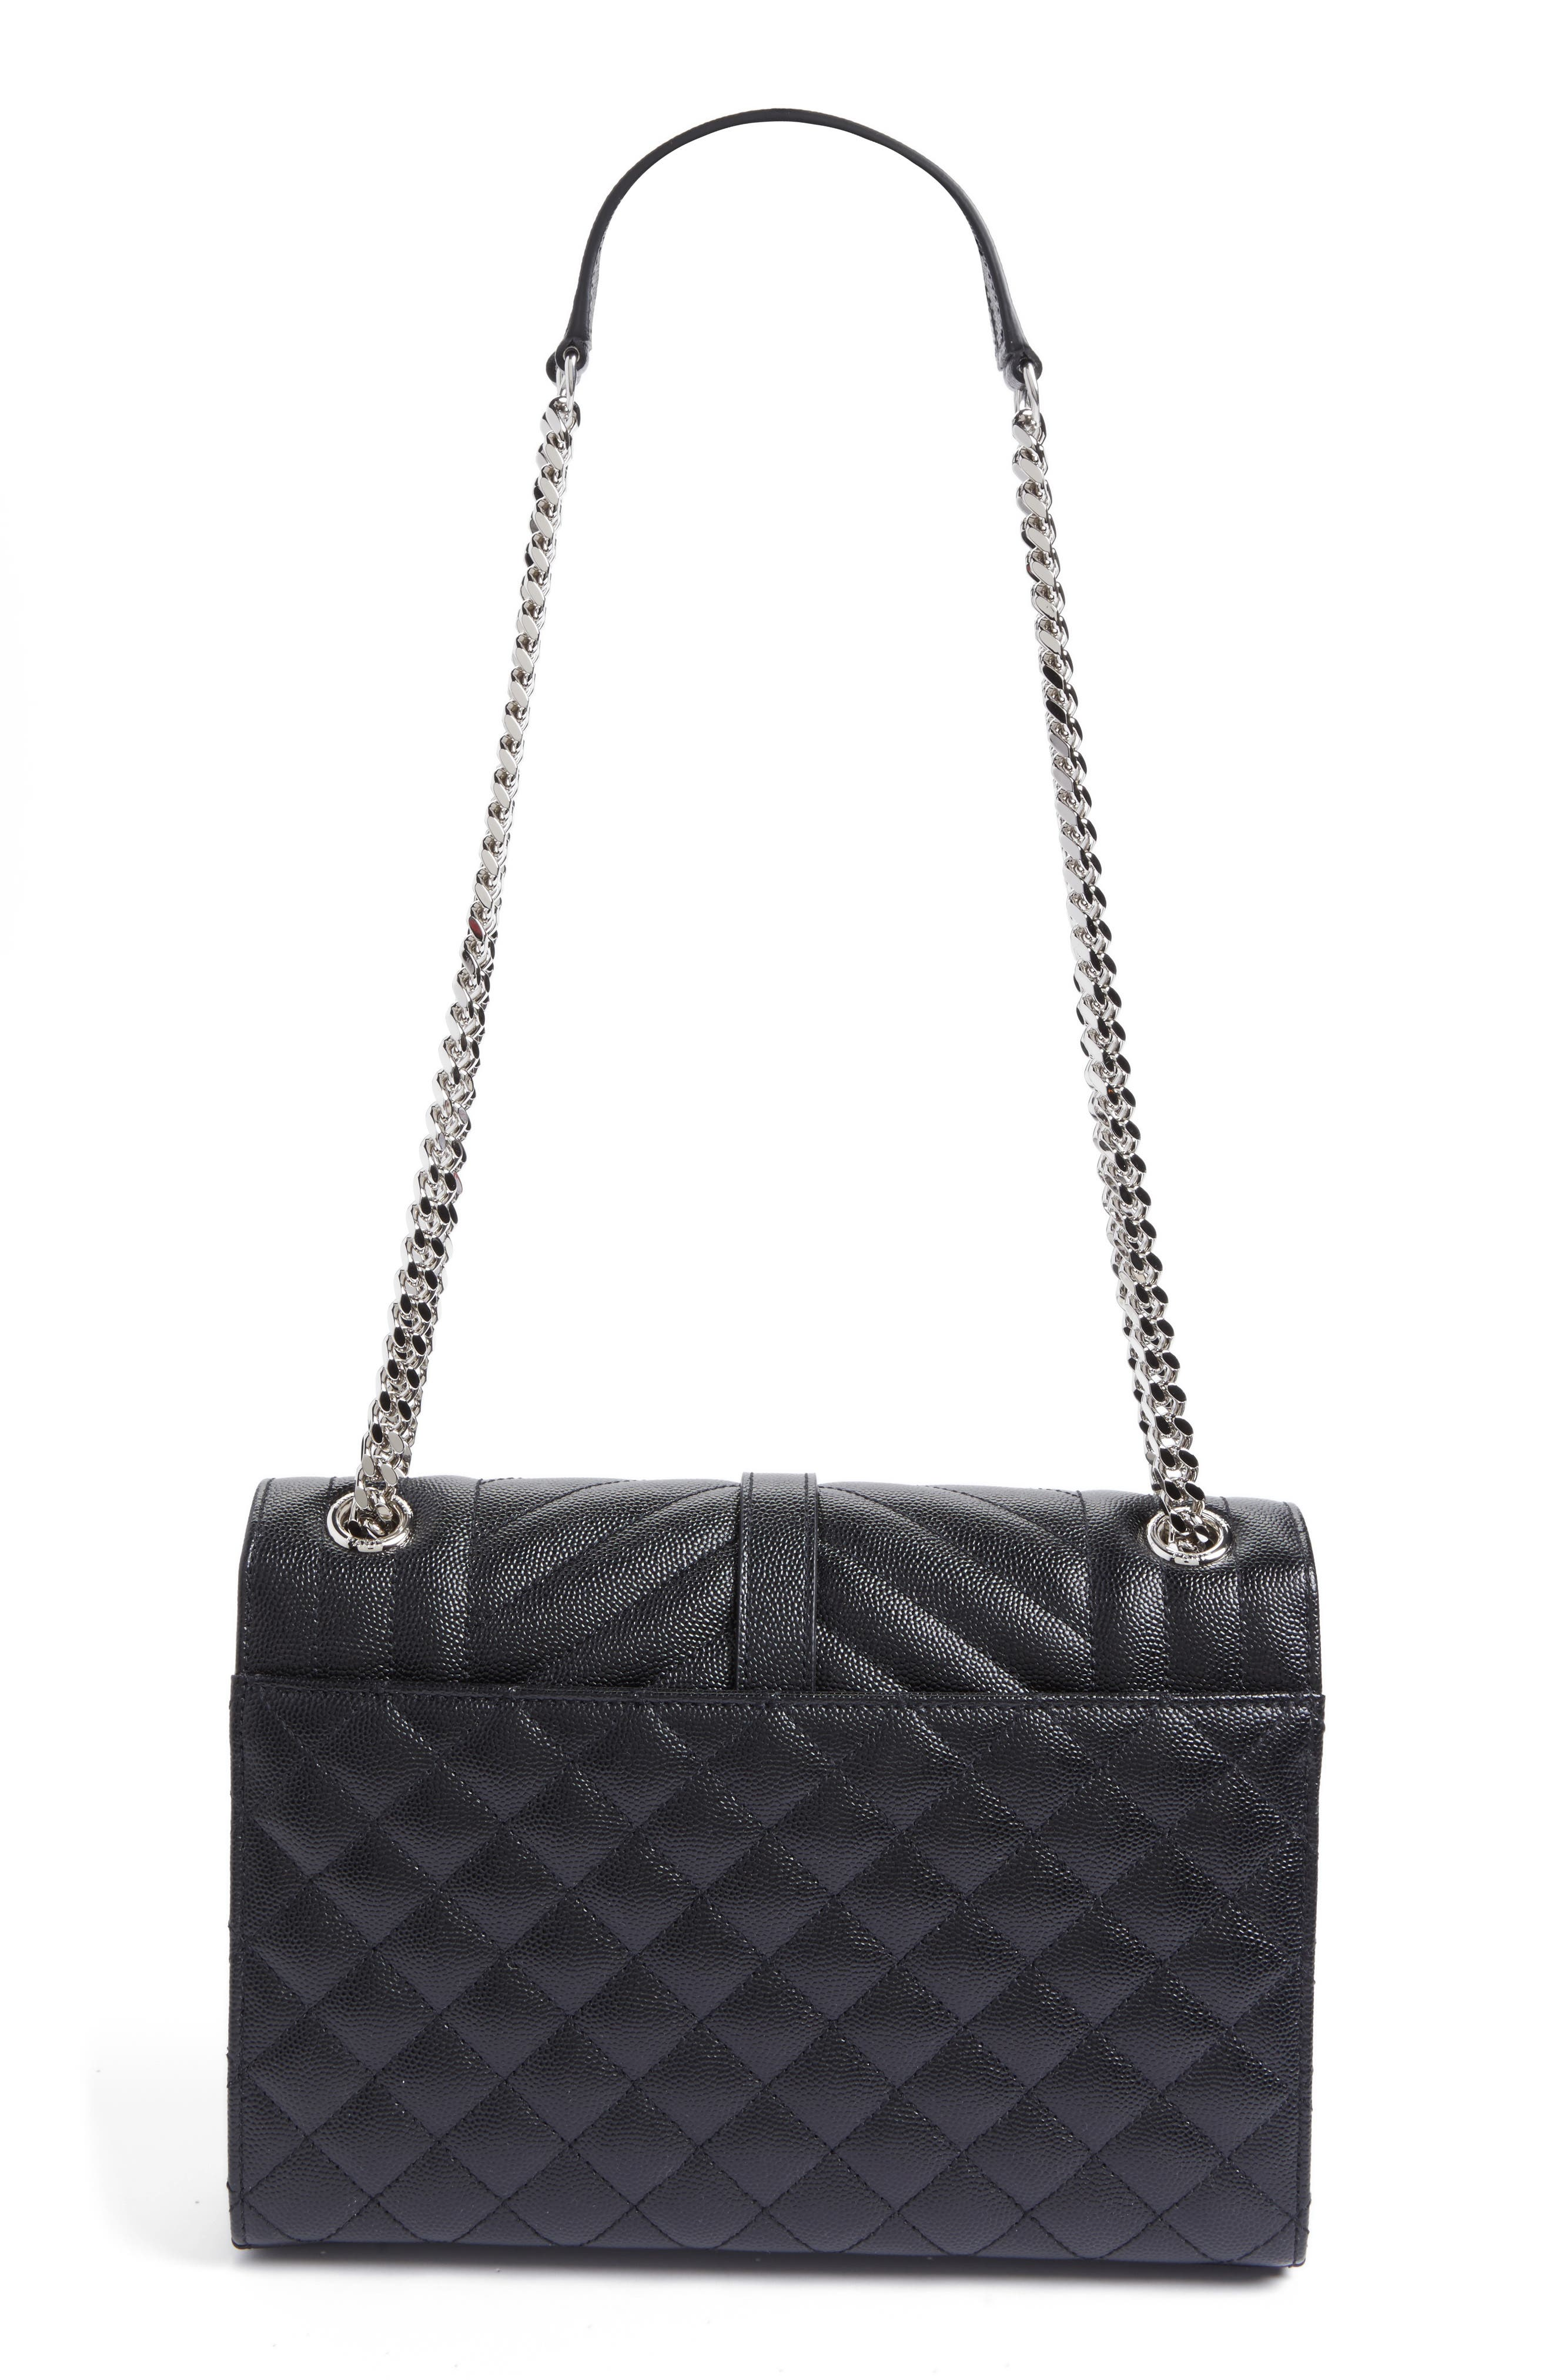 Medium Monogram Quilted Leather Shoulder Bag,                             Alternate thumbnail 3, color,                             NERO